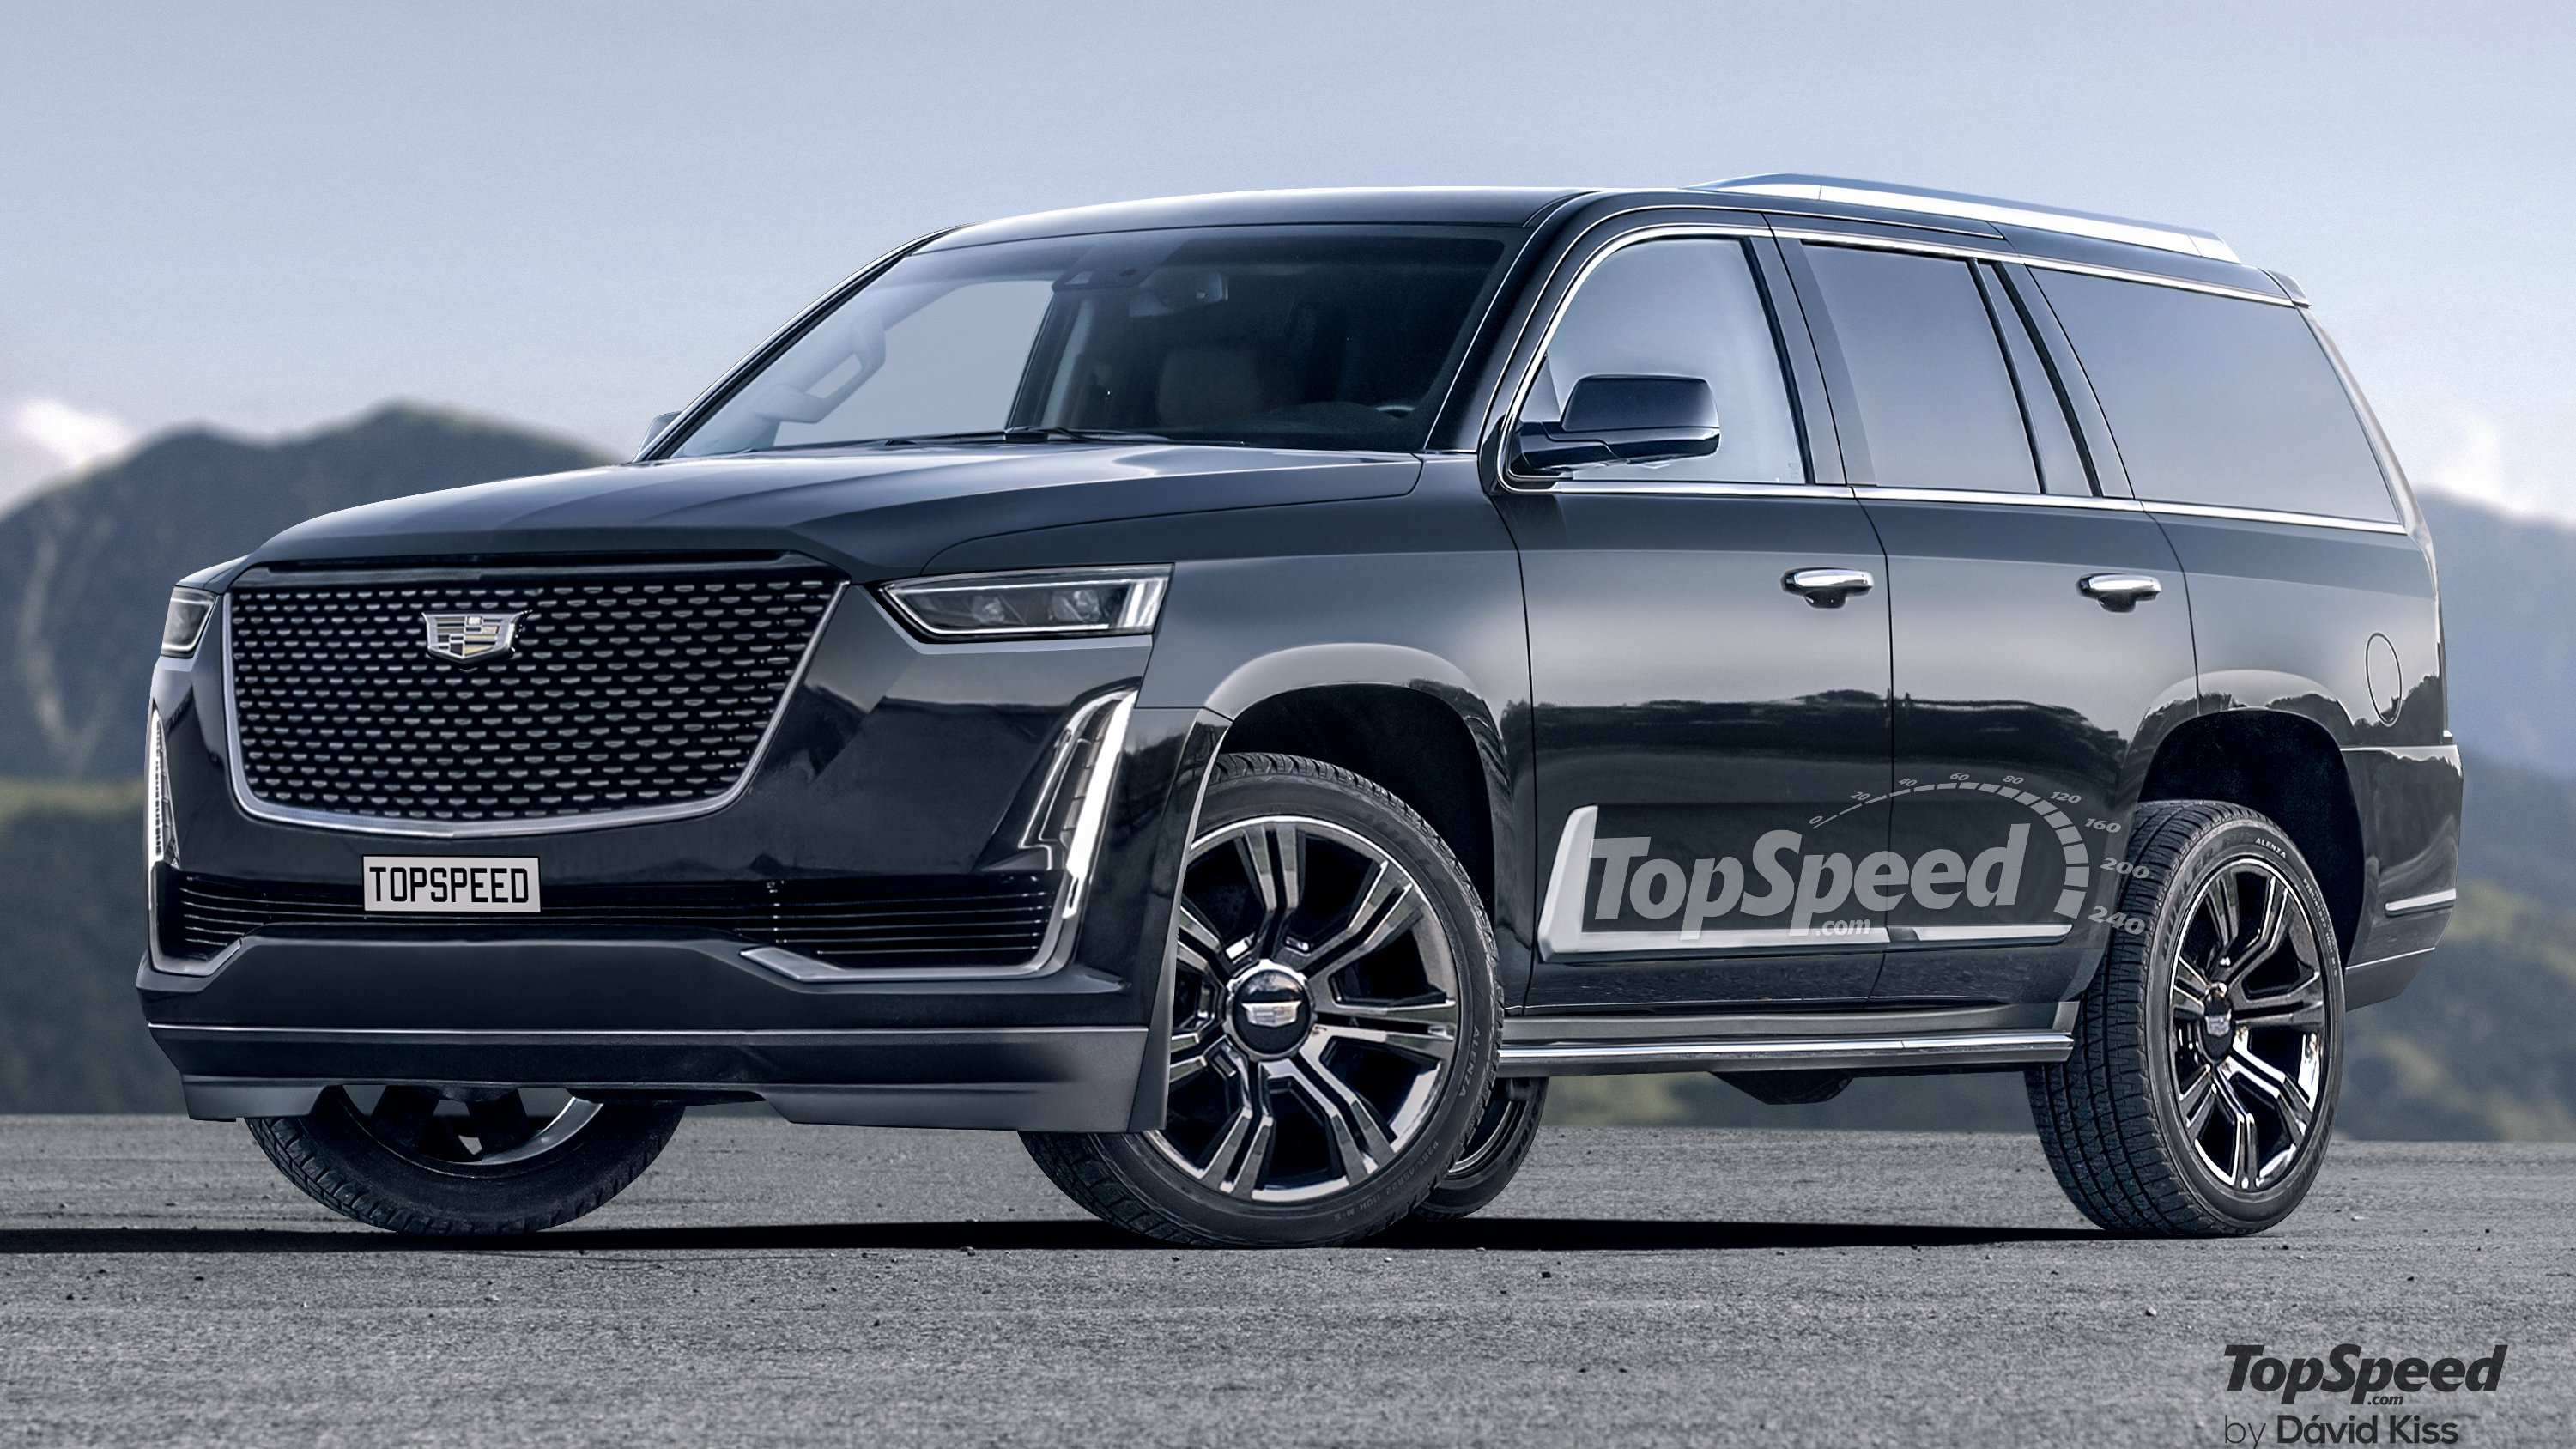 69 All New 2020 Cadillac Escalade White Style by 2020 Cadillac Escalade White